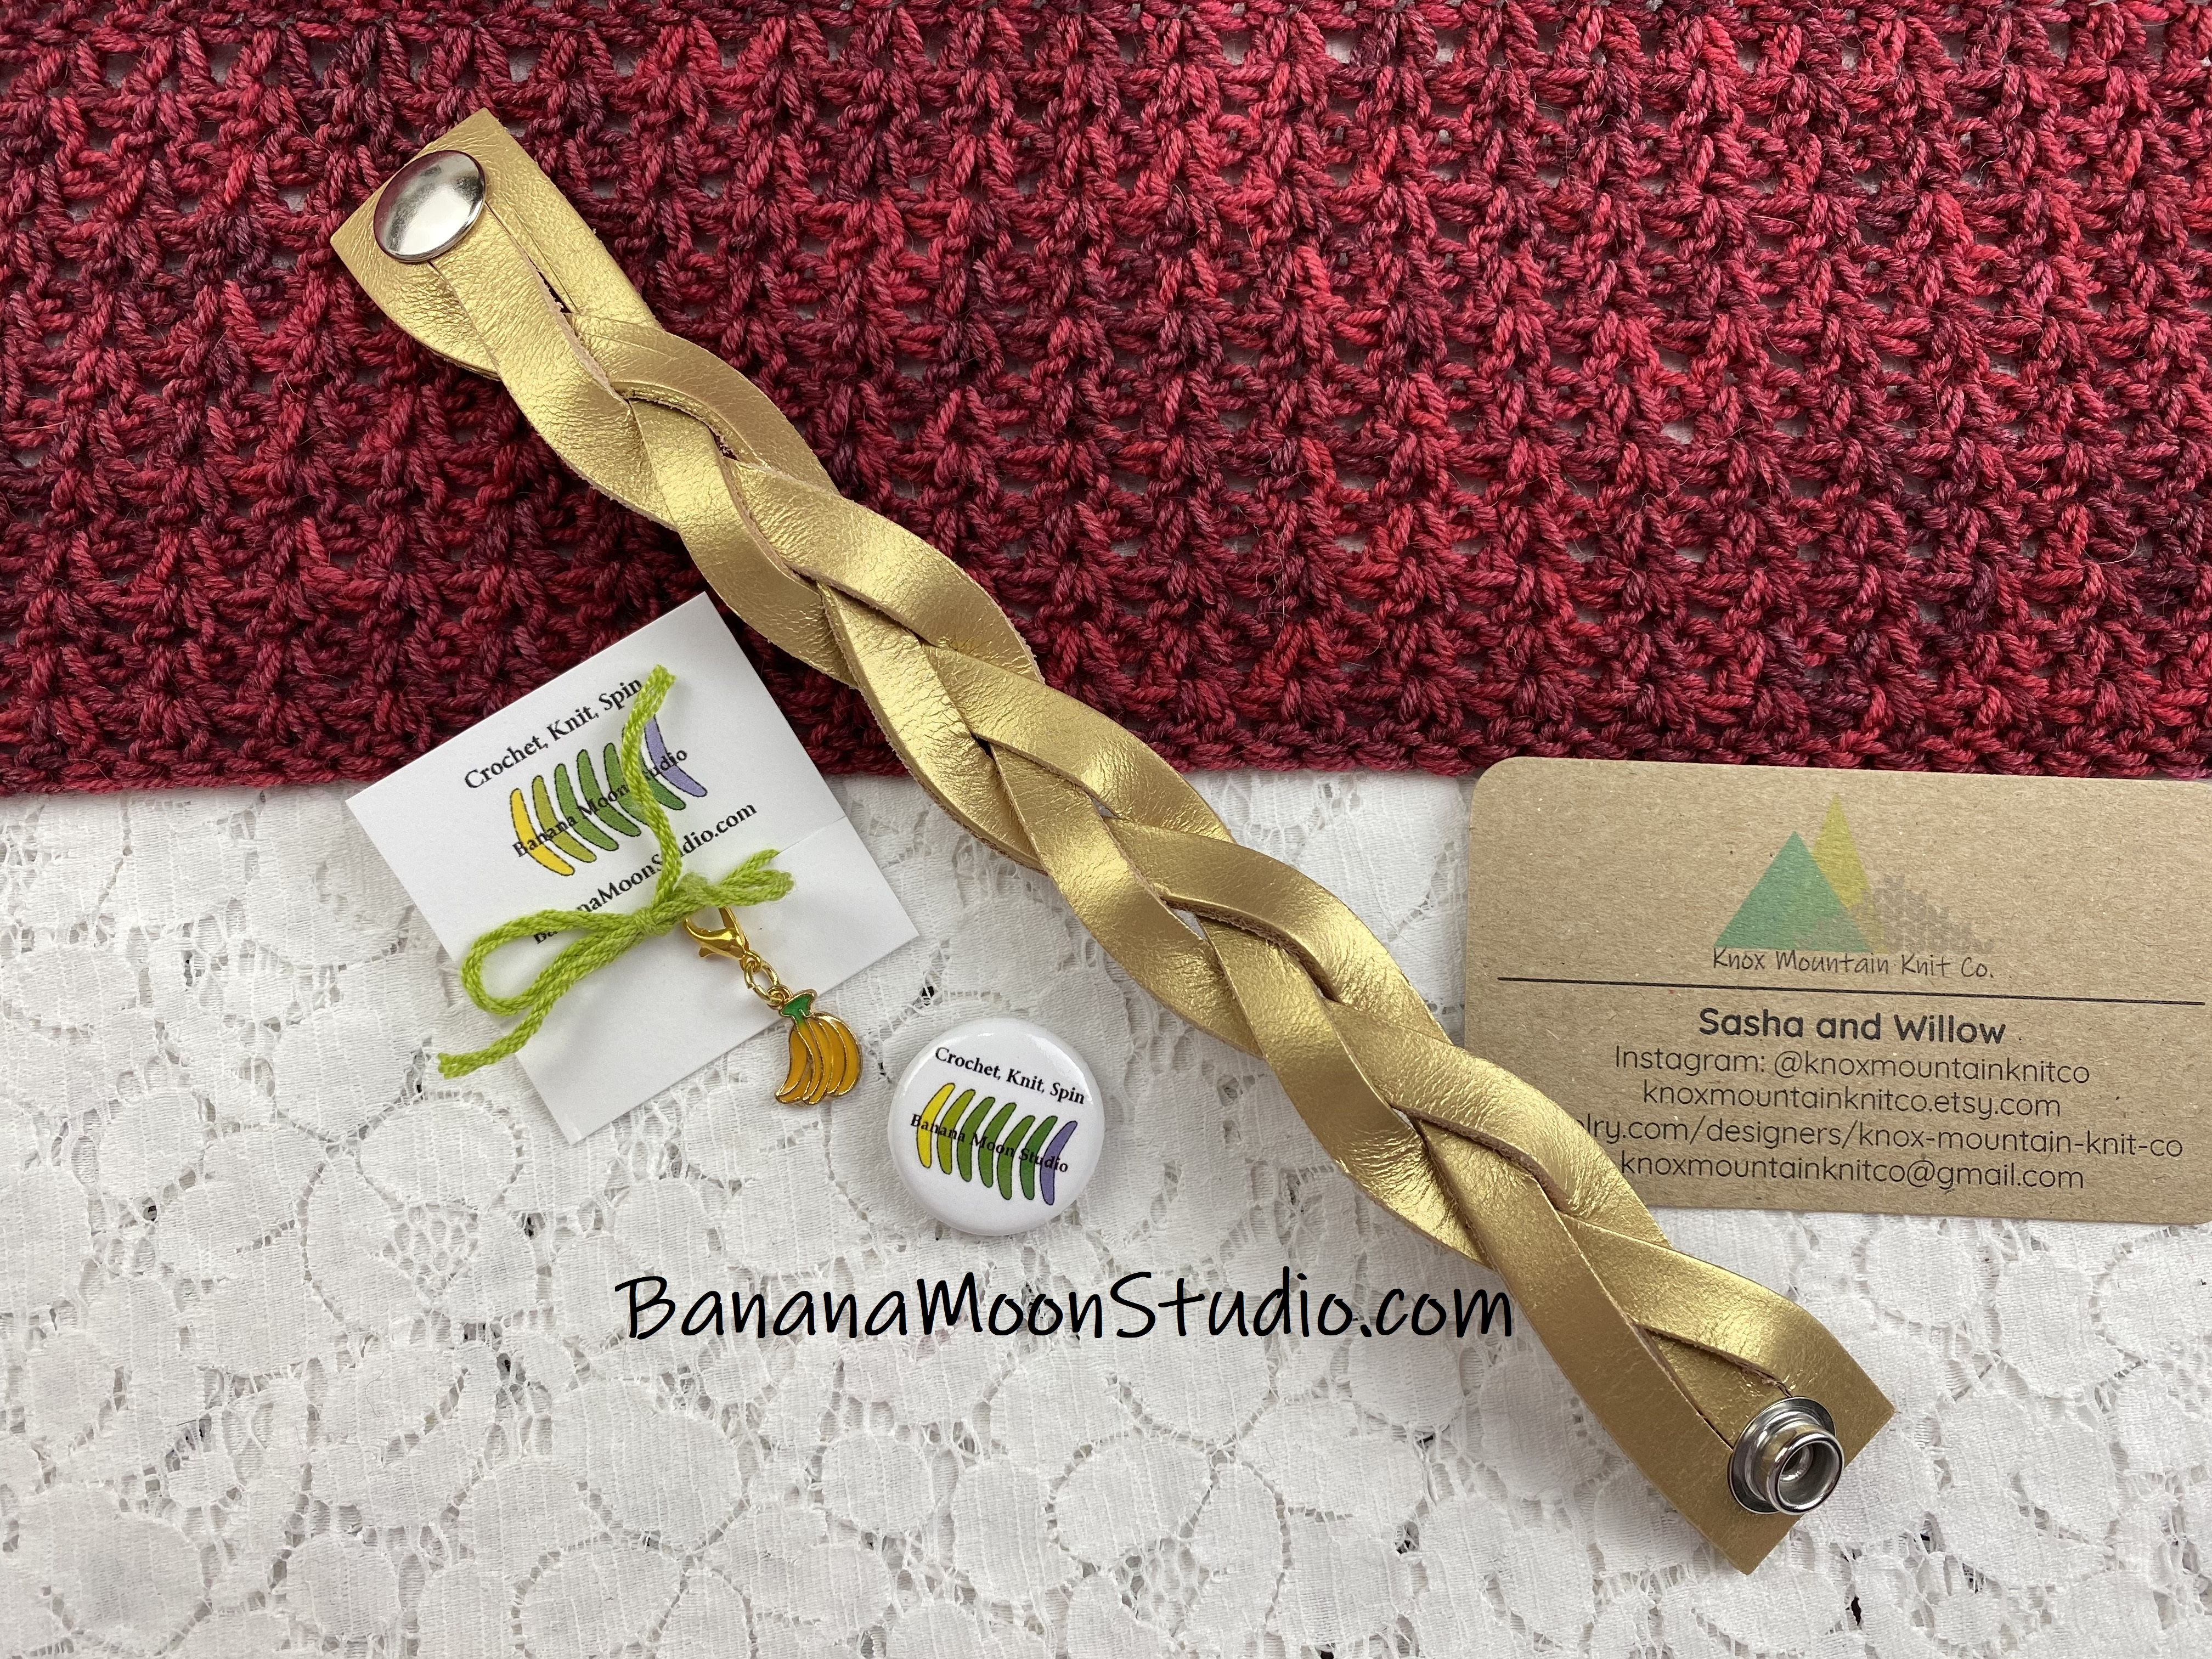 Edge of a red crochet shawl, gold braid leather shawl cuff, Banana Moon Studio stitch marker and button, business card for Knox Mountain Knit Co. on a white lace background.